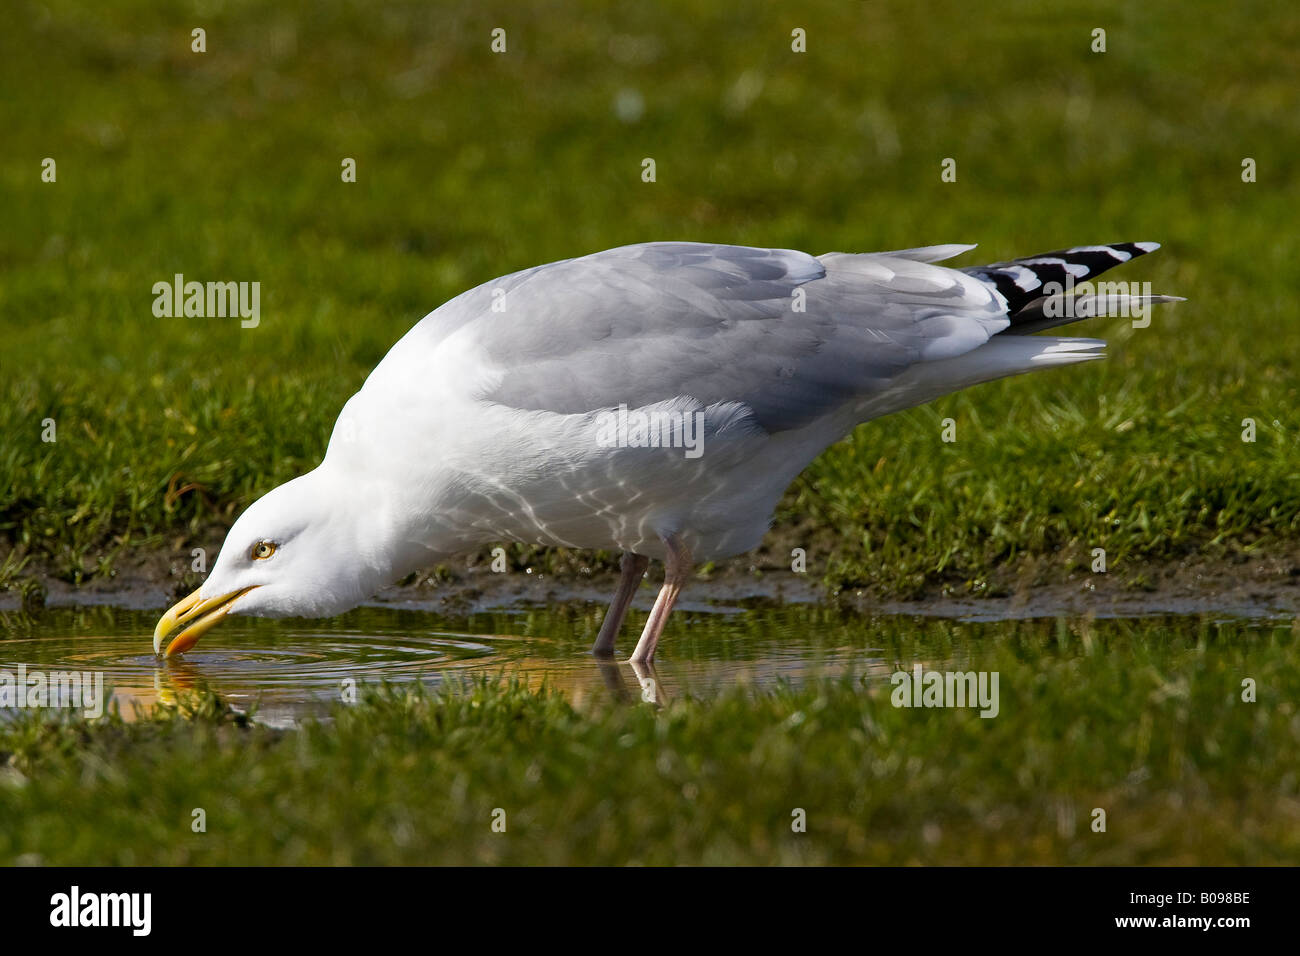 Herring Gull (Larus argentatus) drinking water from a puddle, Buesum, North Sea coast, Schleswig-Holstein, Germany - Stock Image